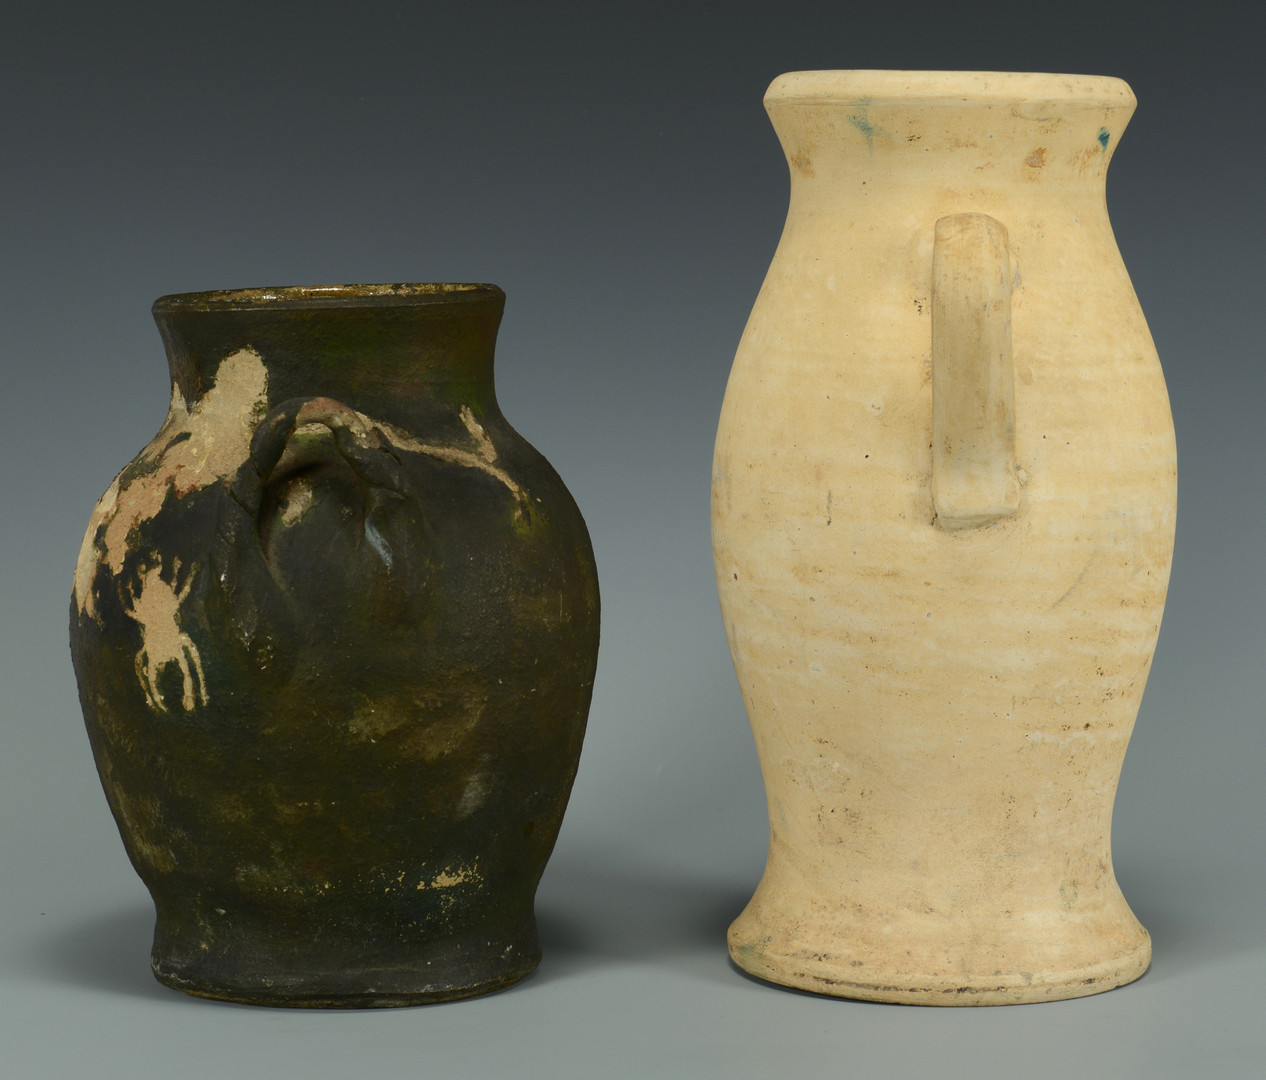 Lot 695: 3 Southern Pottery Jars, Painted